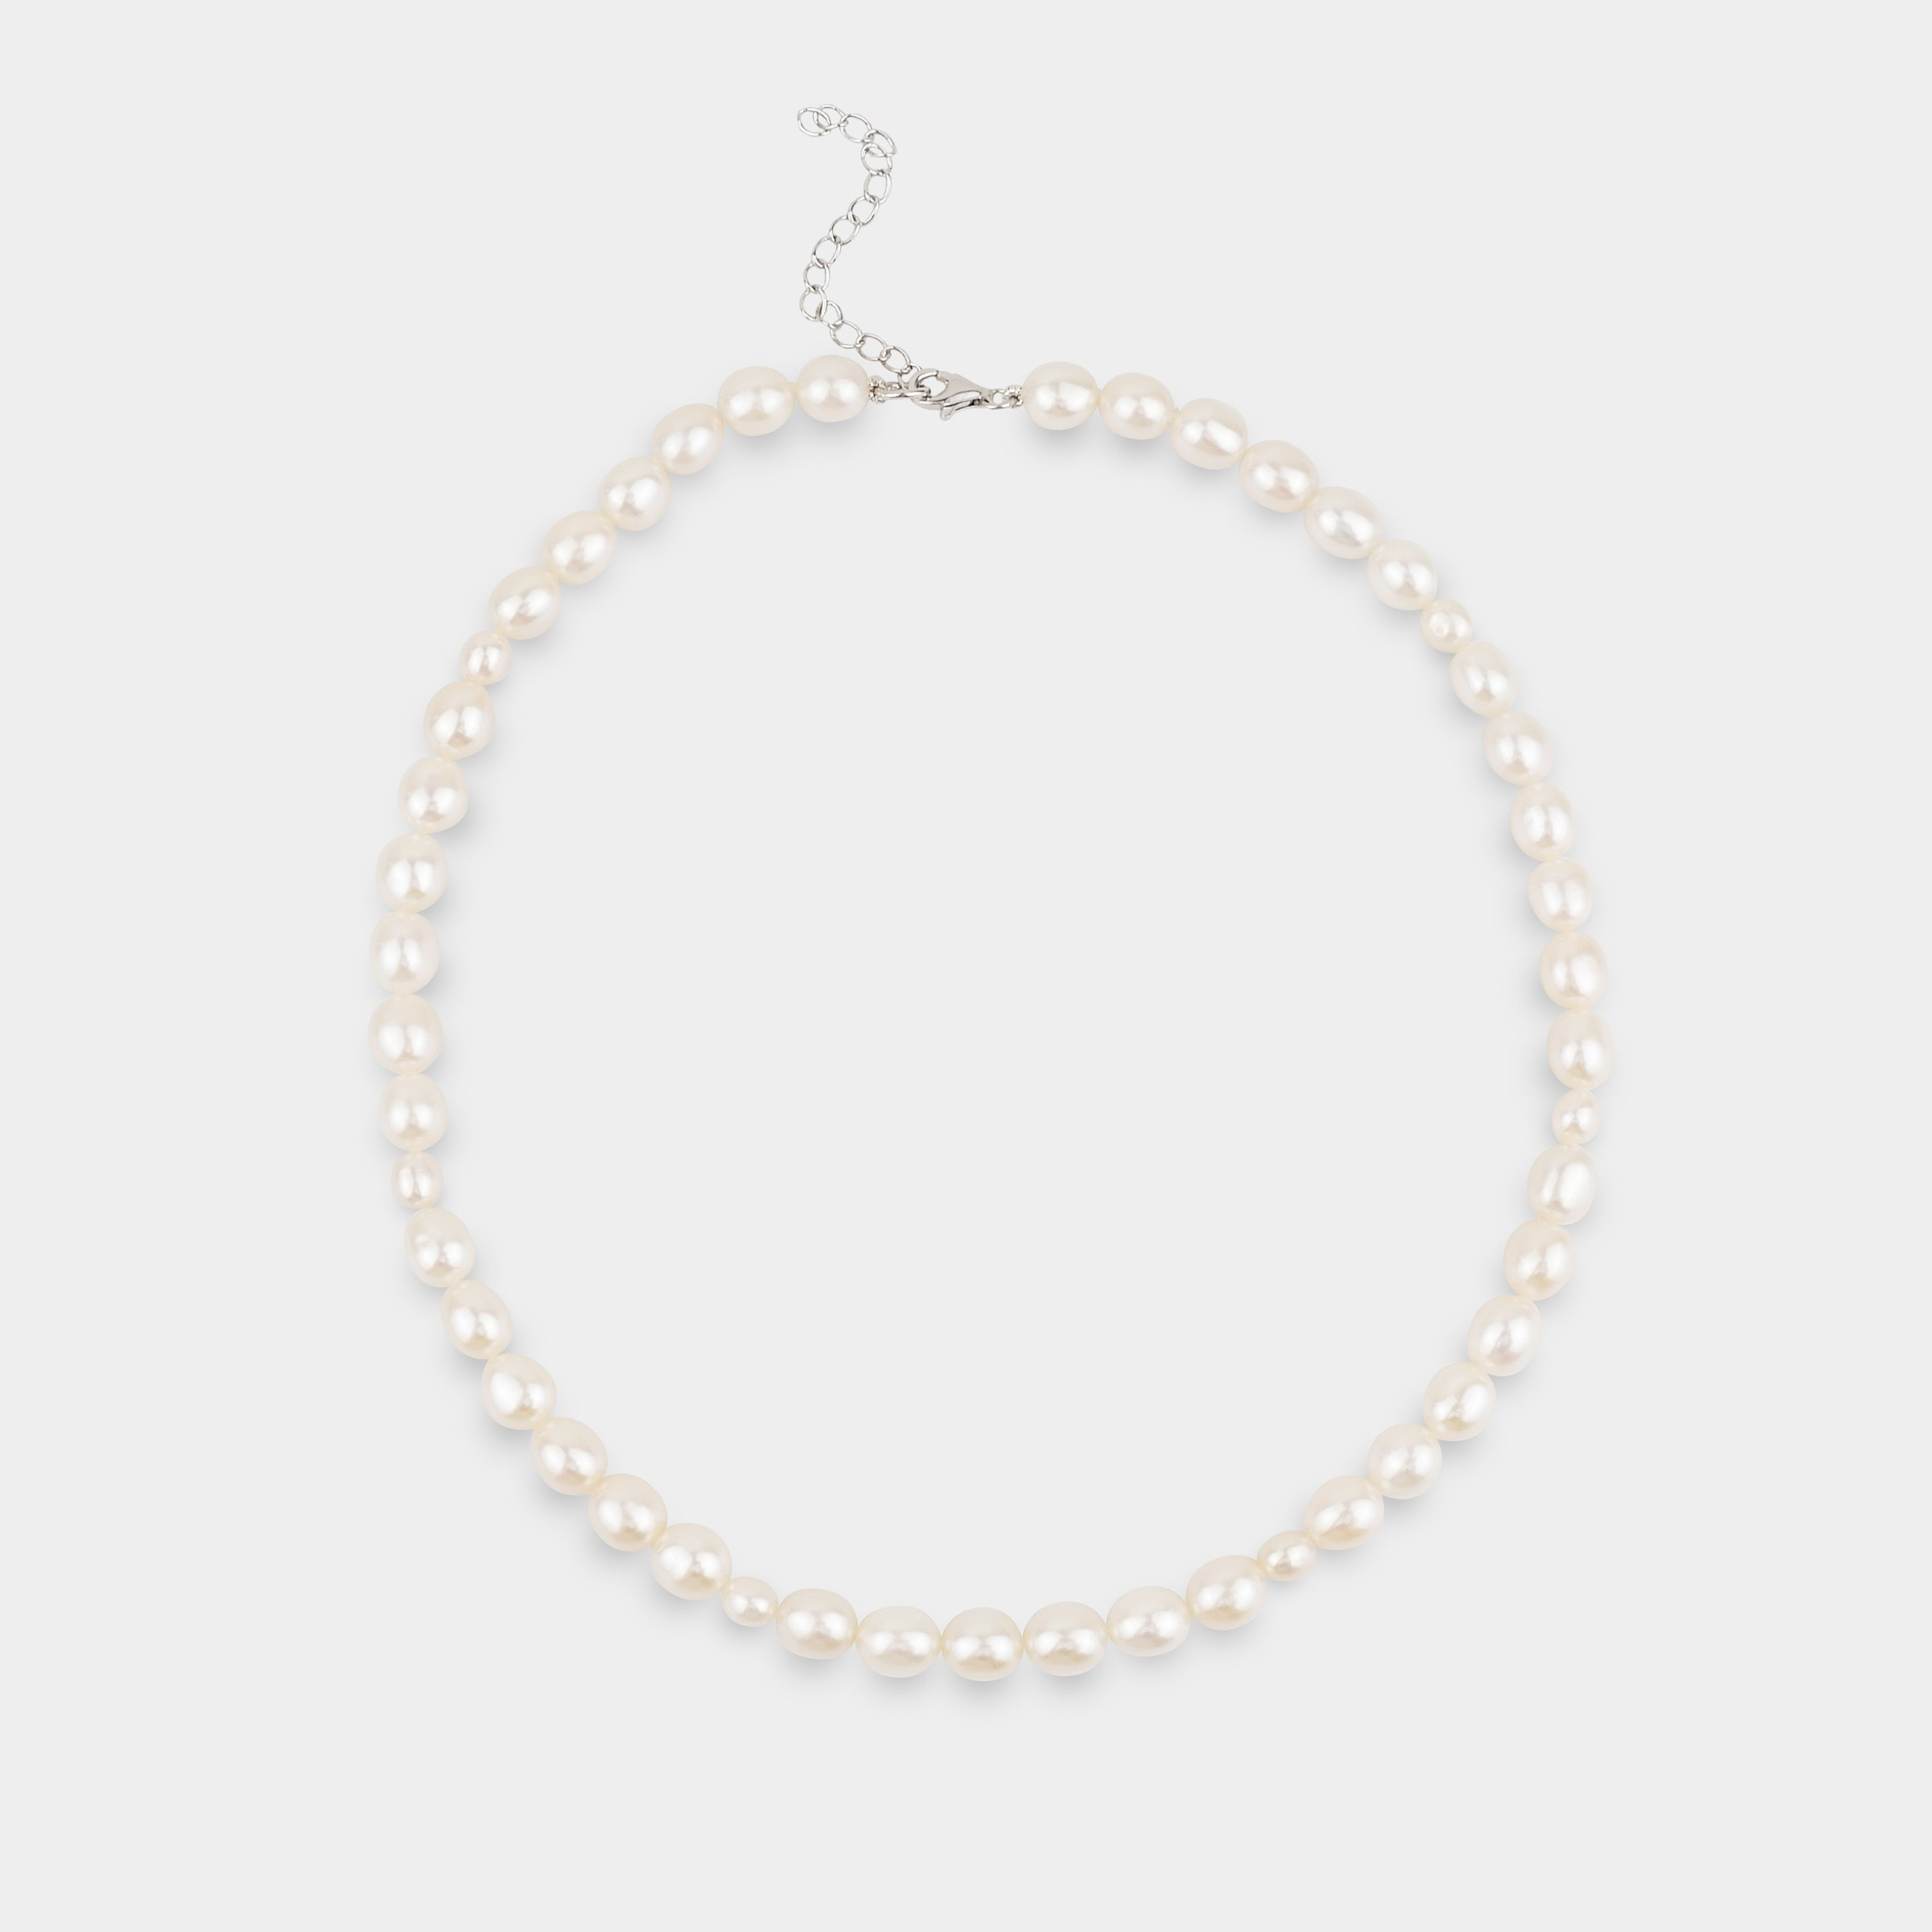 THE OVAL-PEARLS NECKLACE